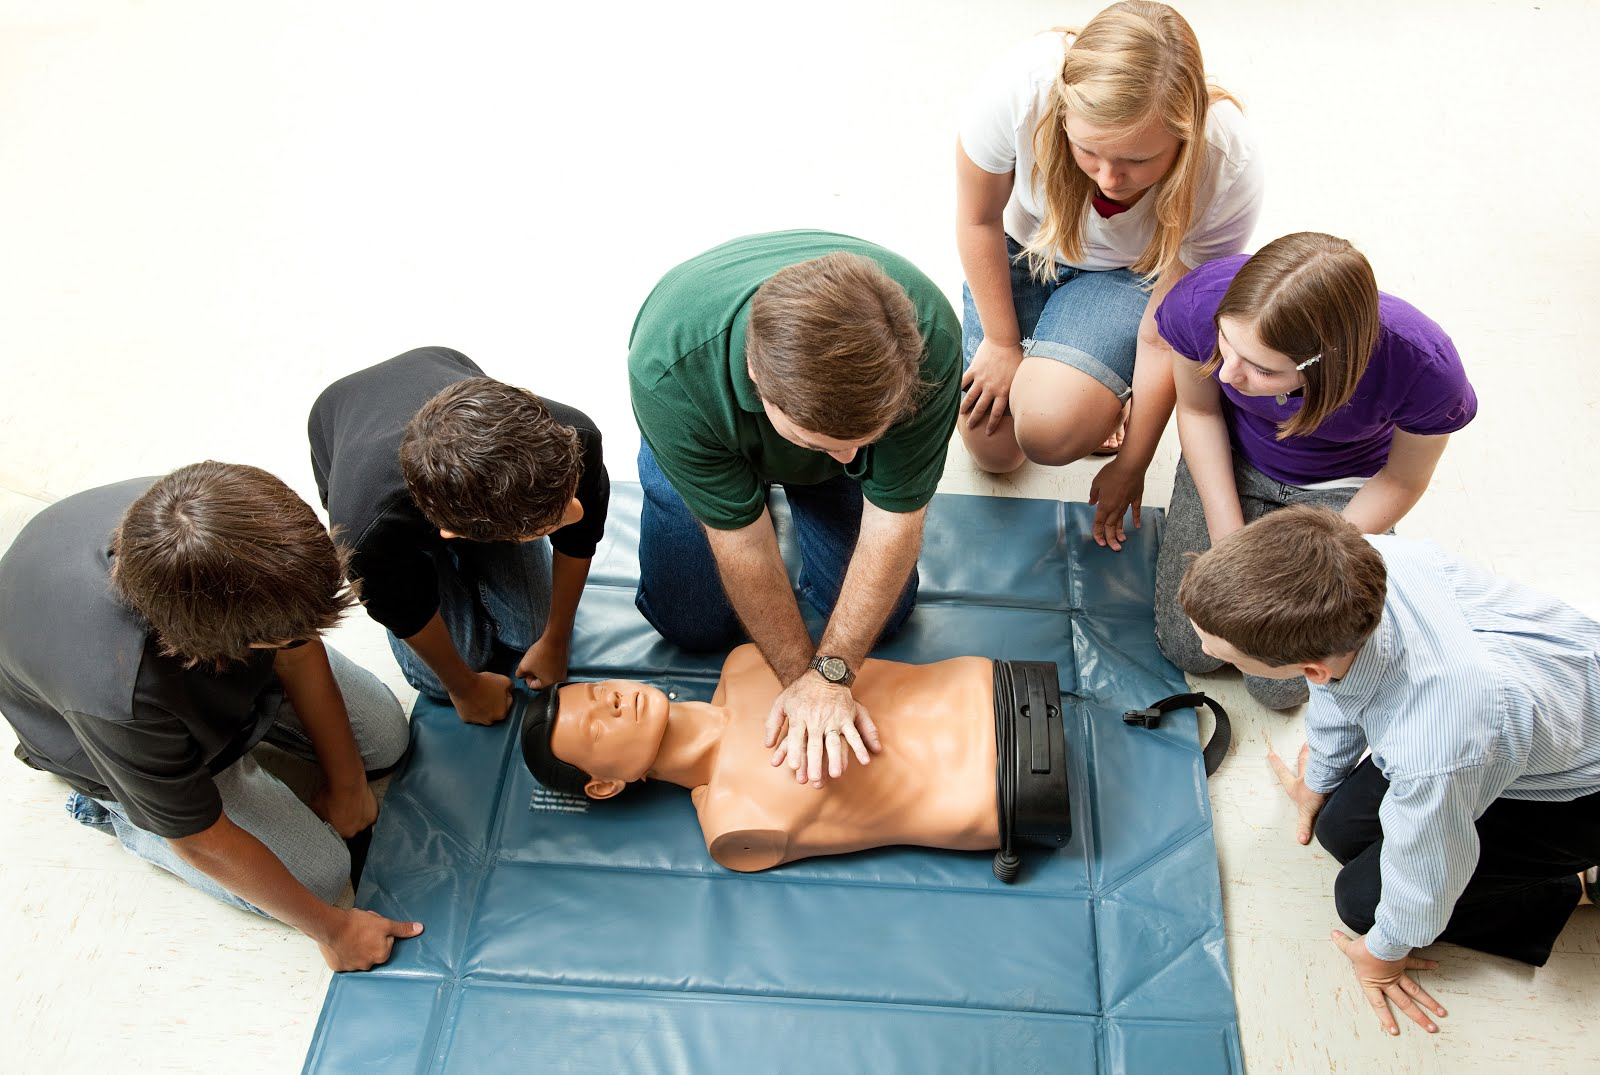 Cpr austin bls acls class austin pals first aid courses austin image of cpr training 1betcityfo Gallery